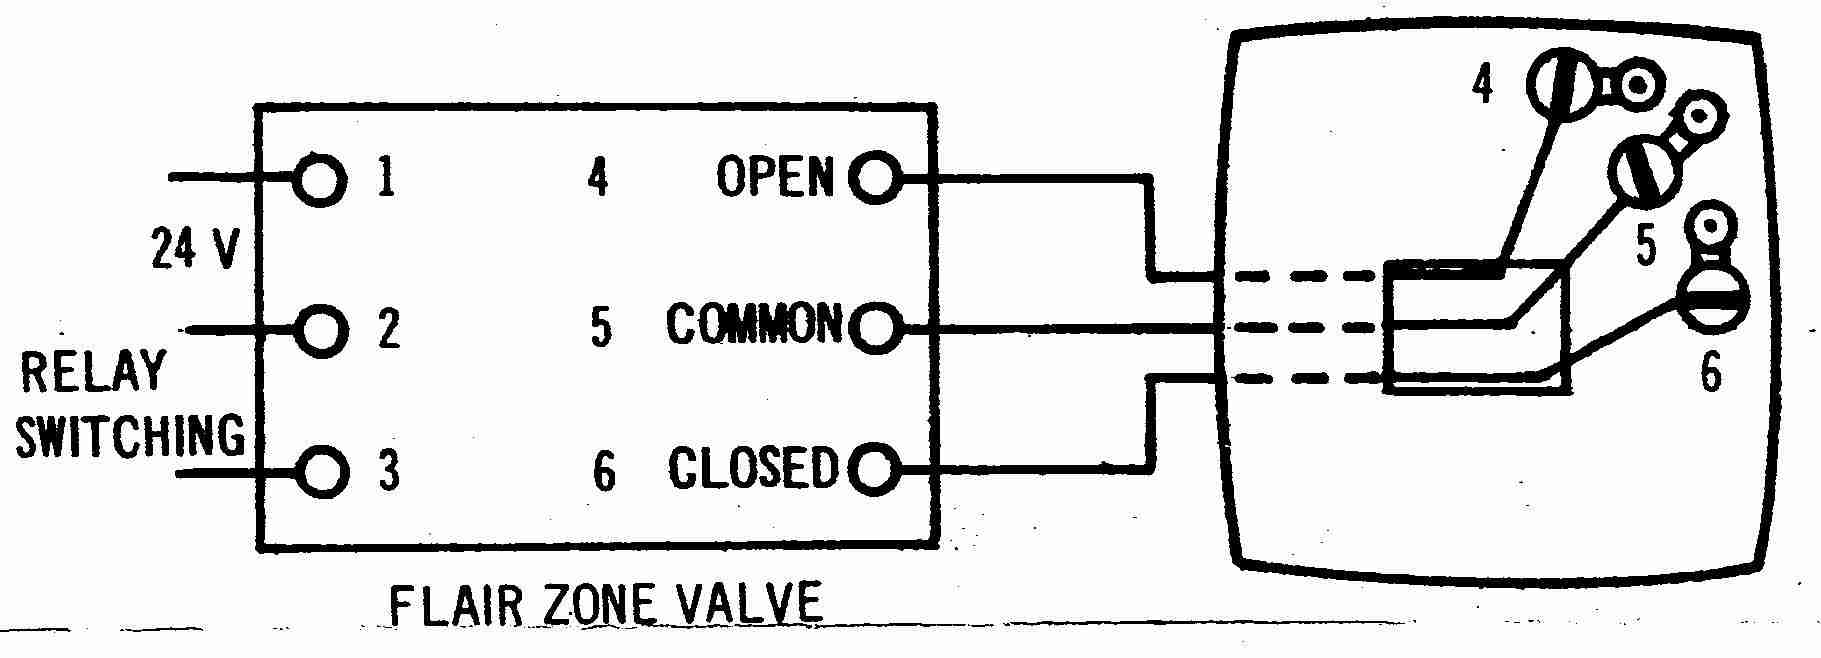 Room Thermostat Wiring Diagrams For Hvac Systems Troubleshooting Honeywell Wire Flair 3 Controlling A Zone Valve